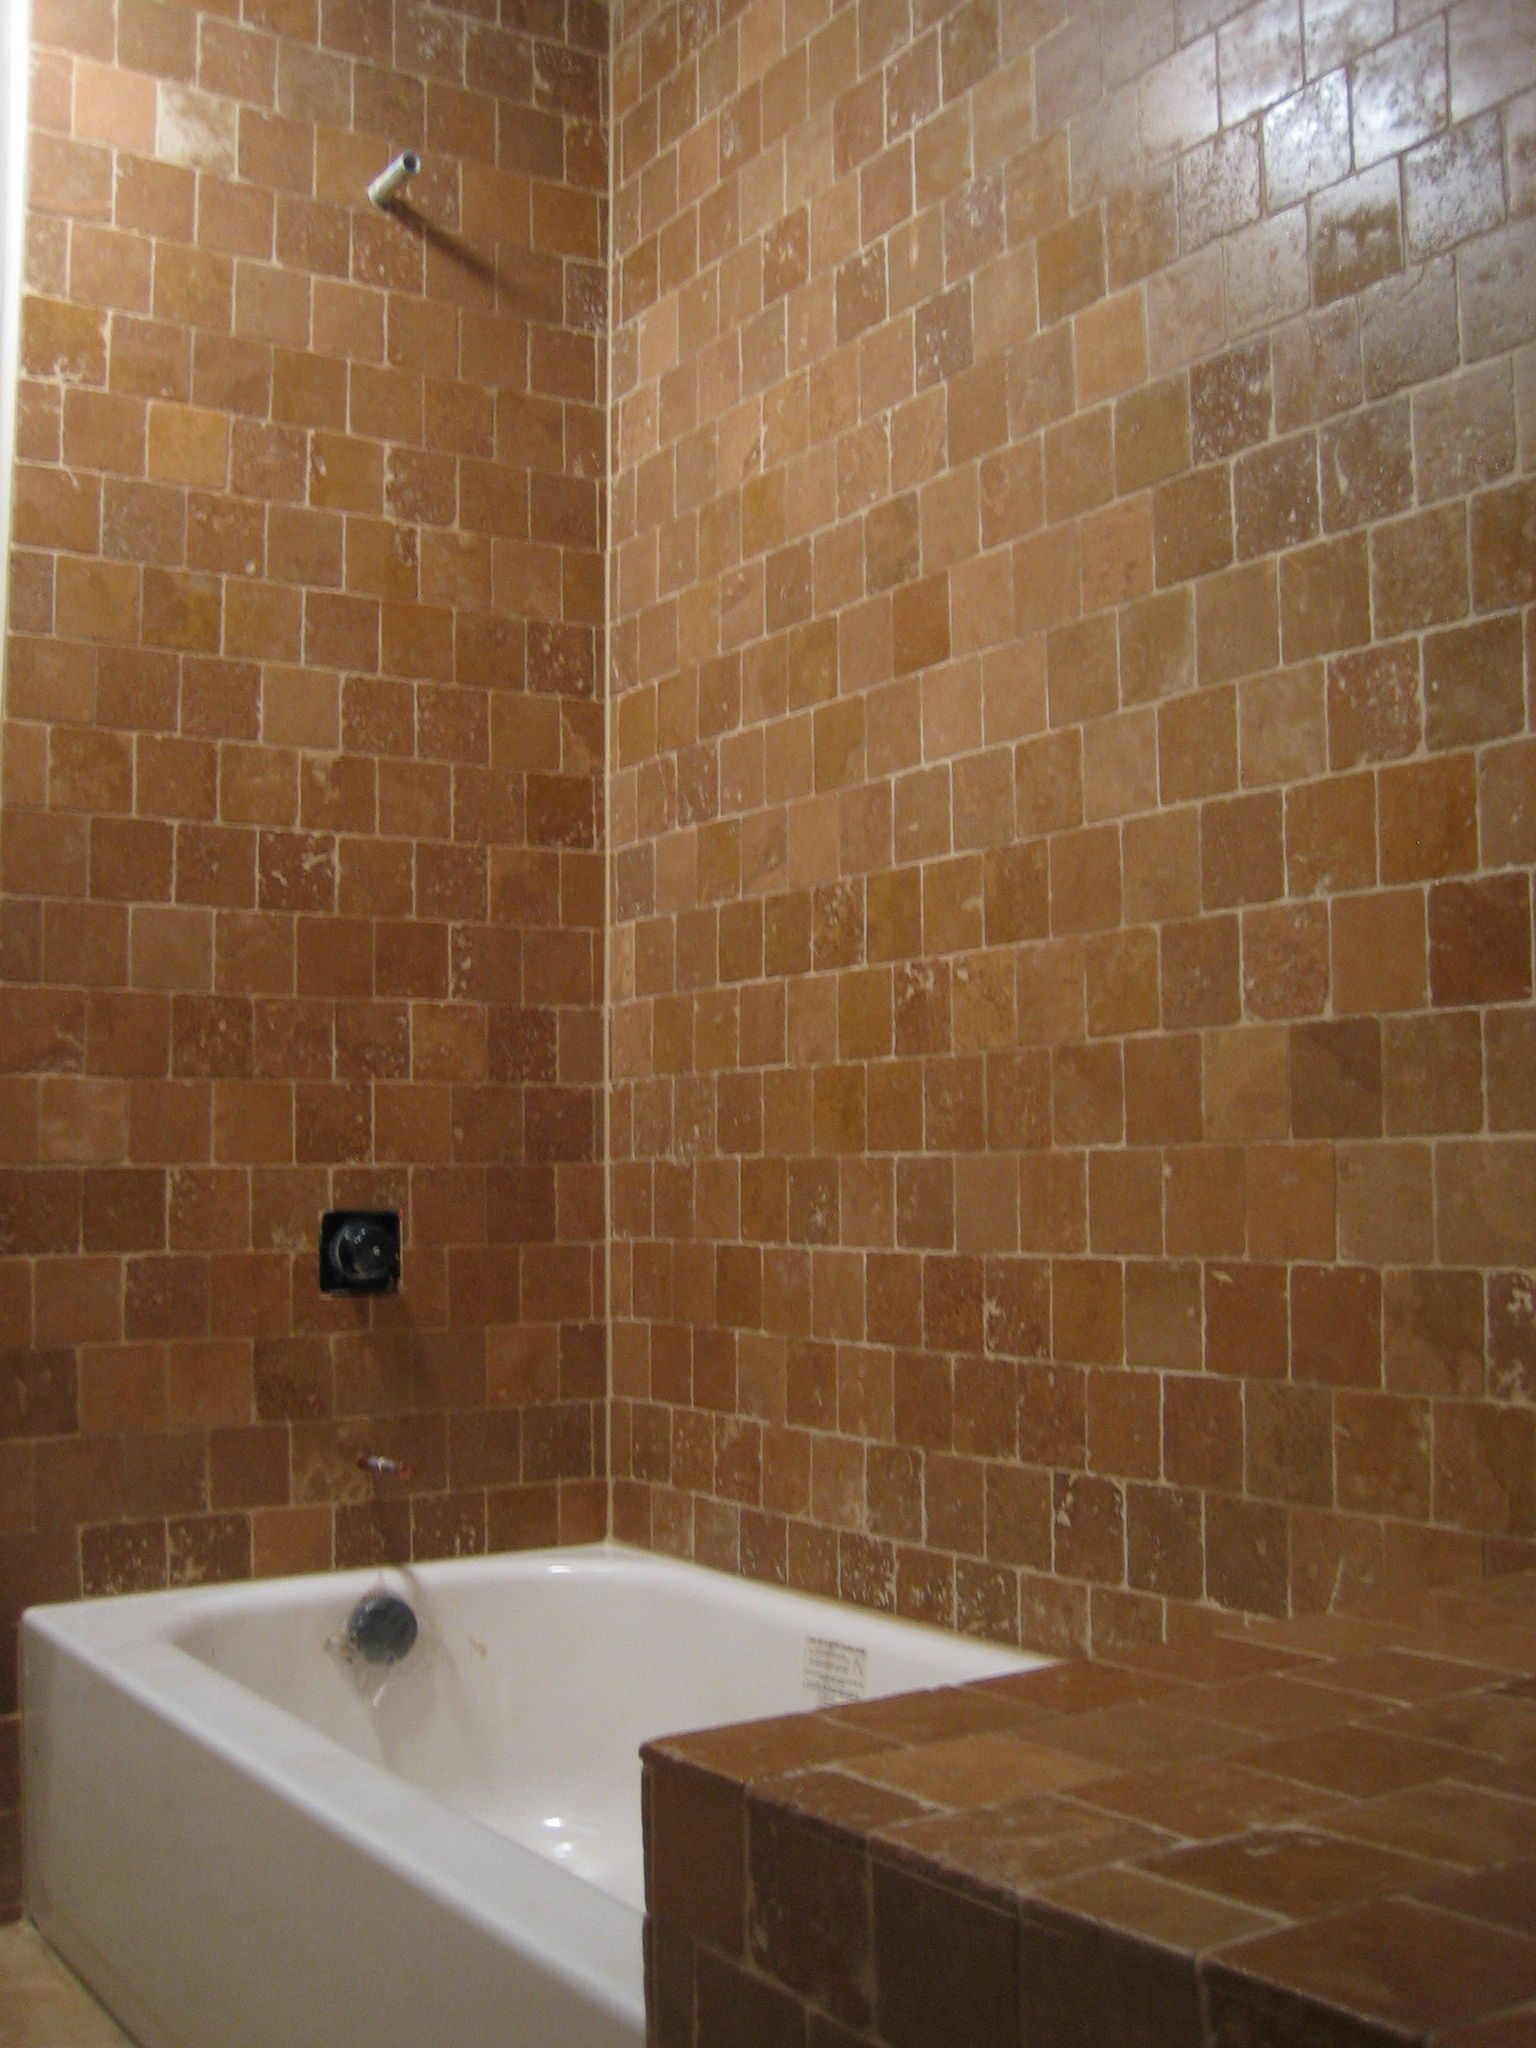 Tiled tub surround pictures bathtub surrounds ma bathtub for Decorating ideas tub surround